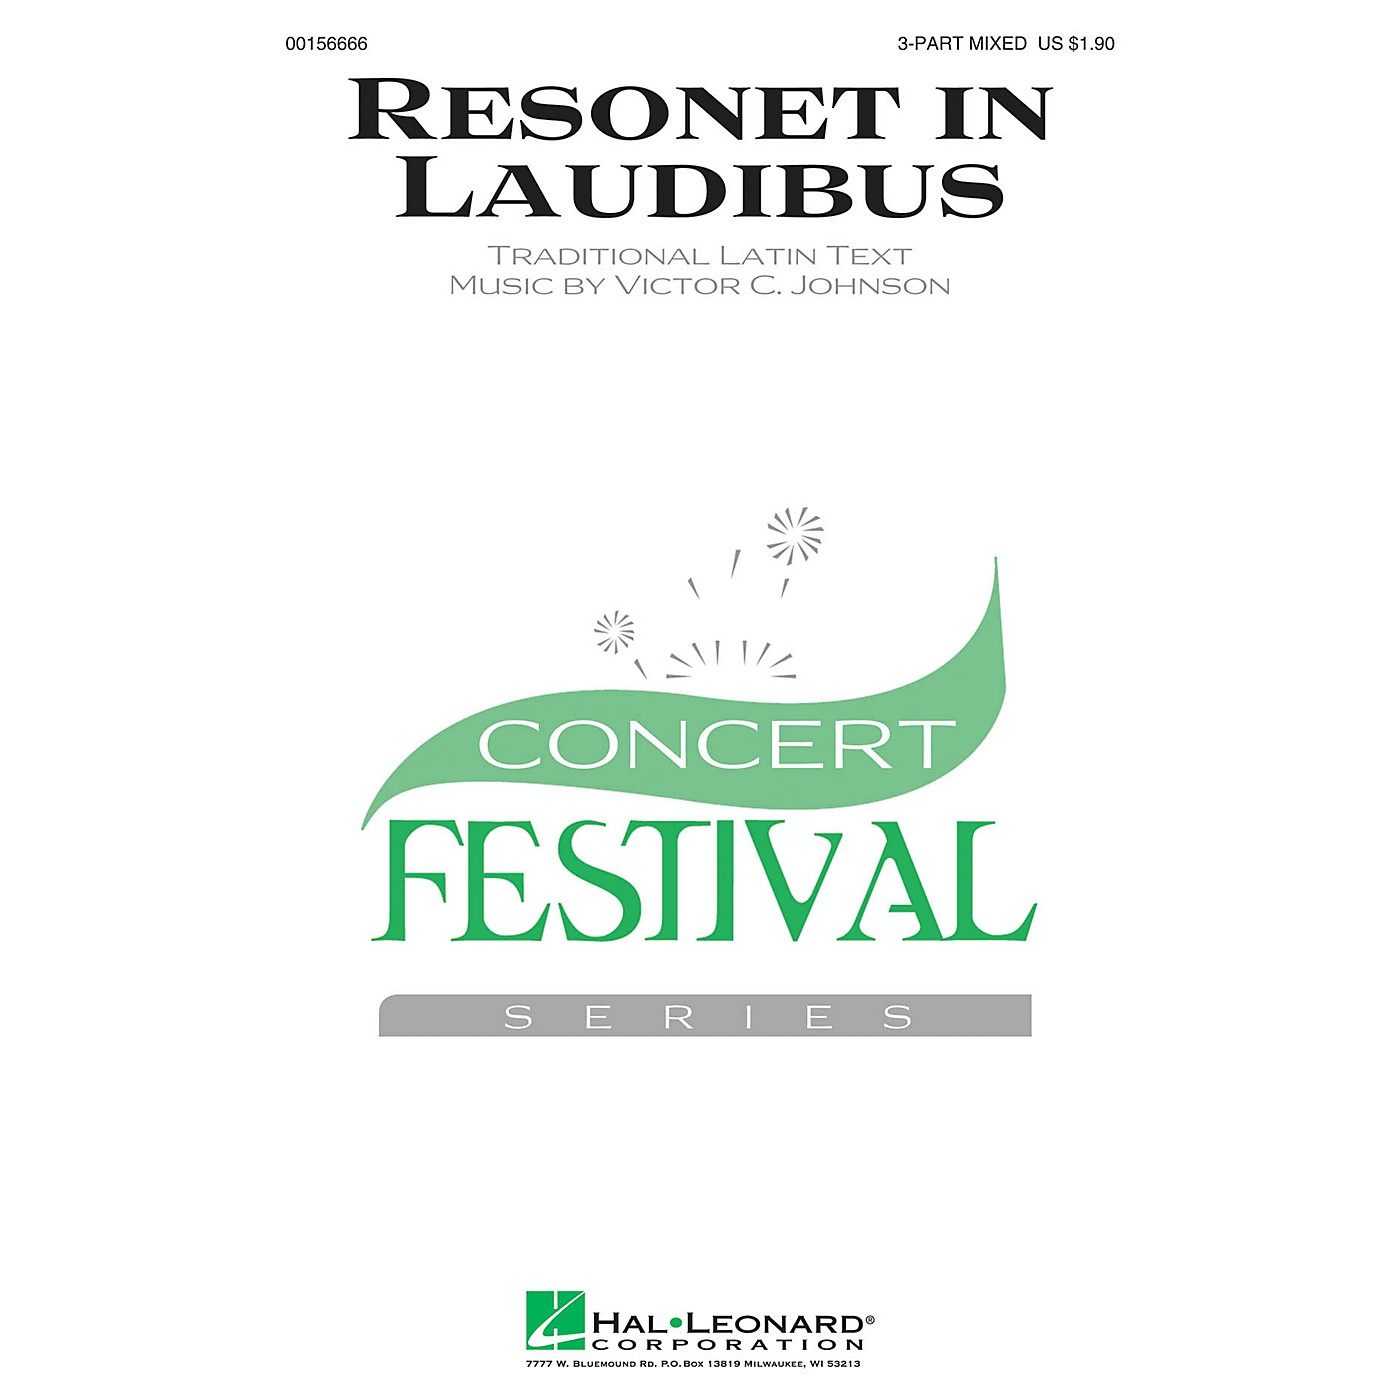 Hal Leonard Resonet in Laudibus 3-Part Mixed composed by Victor C. Johnson thumbnail